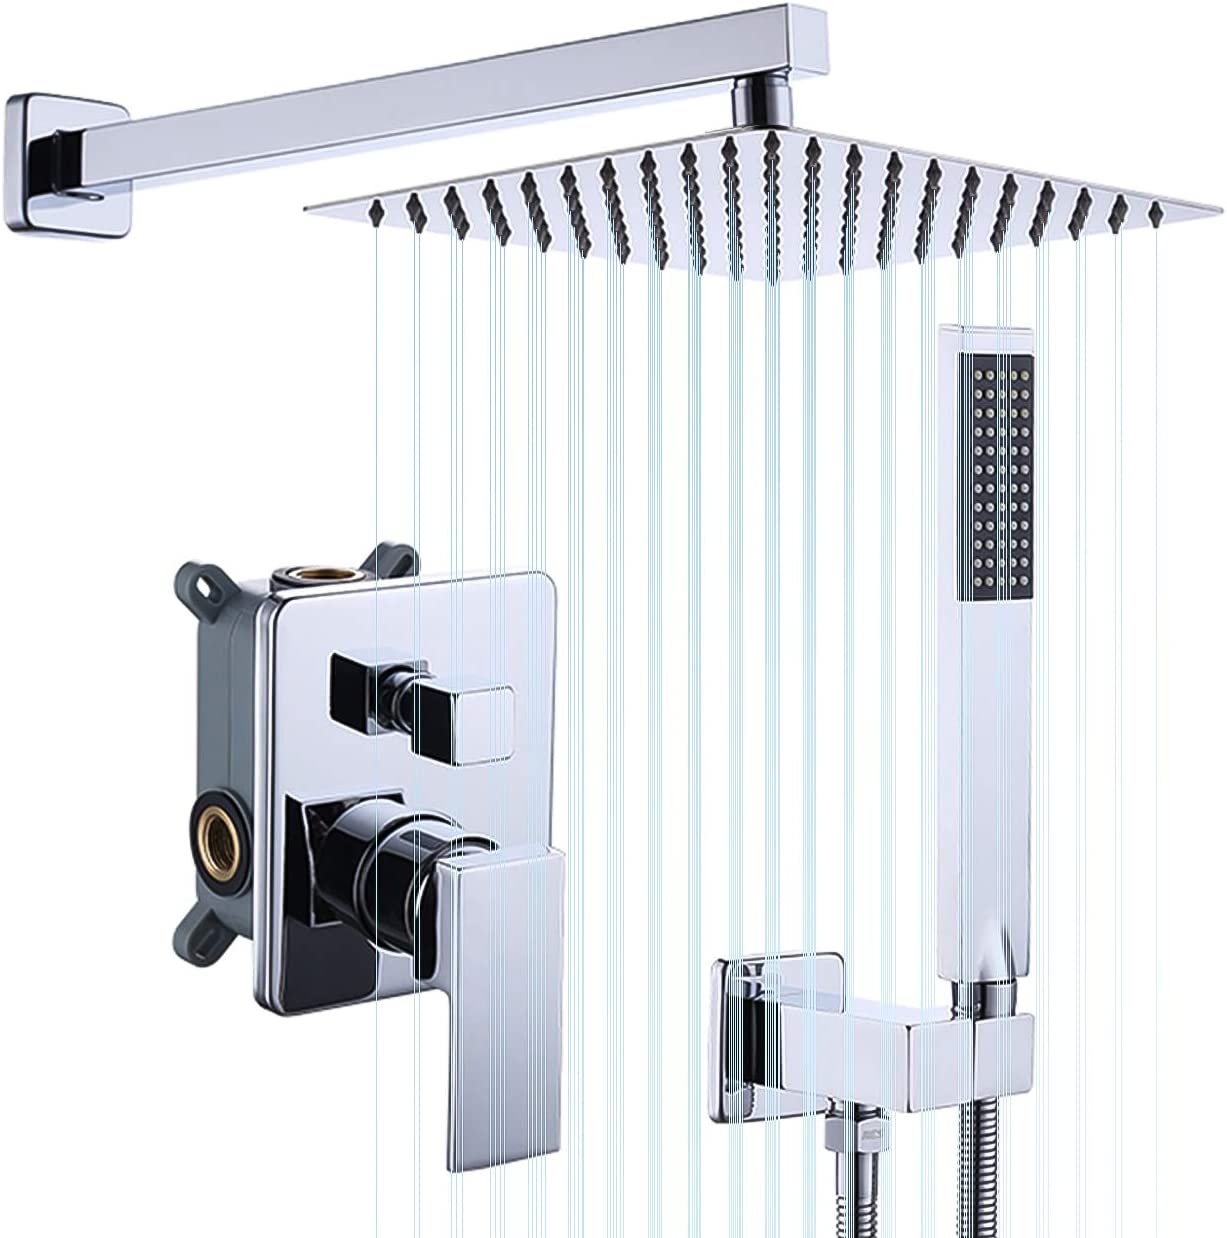 kes pressure balancing rain shower system shower faucet complete set square polished chrome including shower faucet rough in valve body and trim